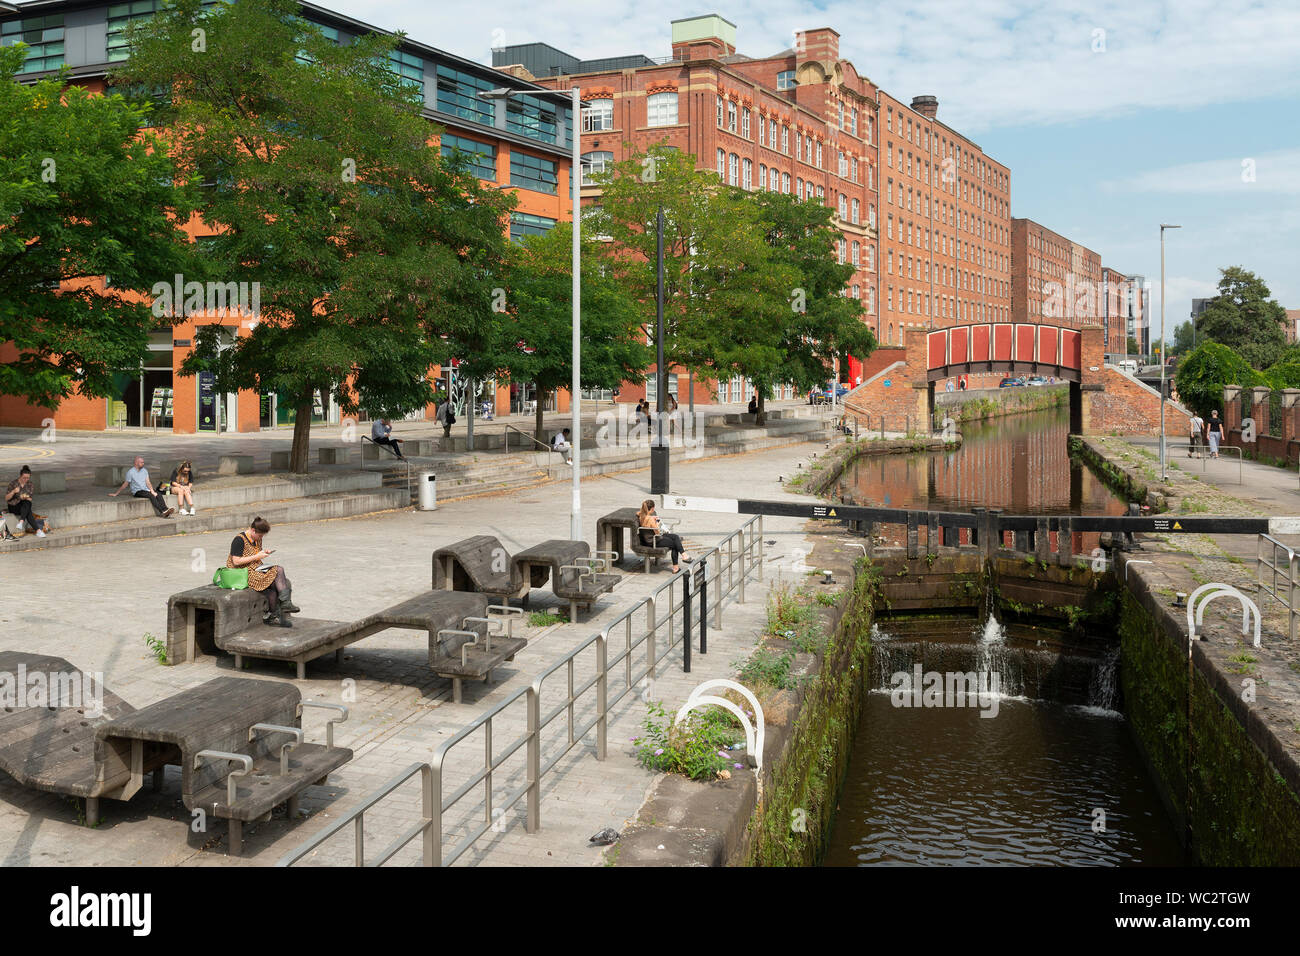 People enjoy the sunshine by the Rochdale Canal in Ancoats, Manchester, UK. Stock Photo